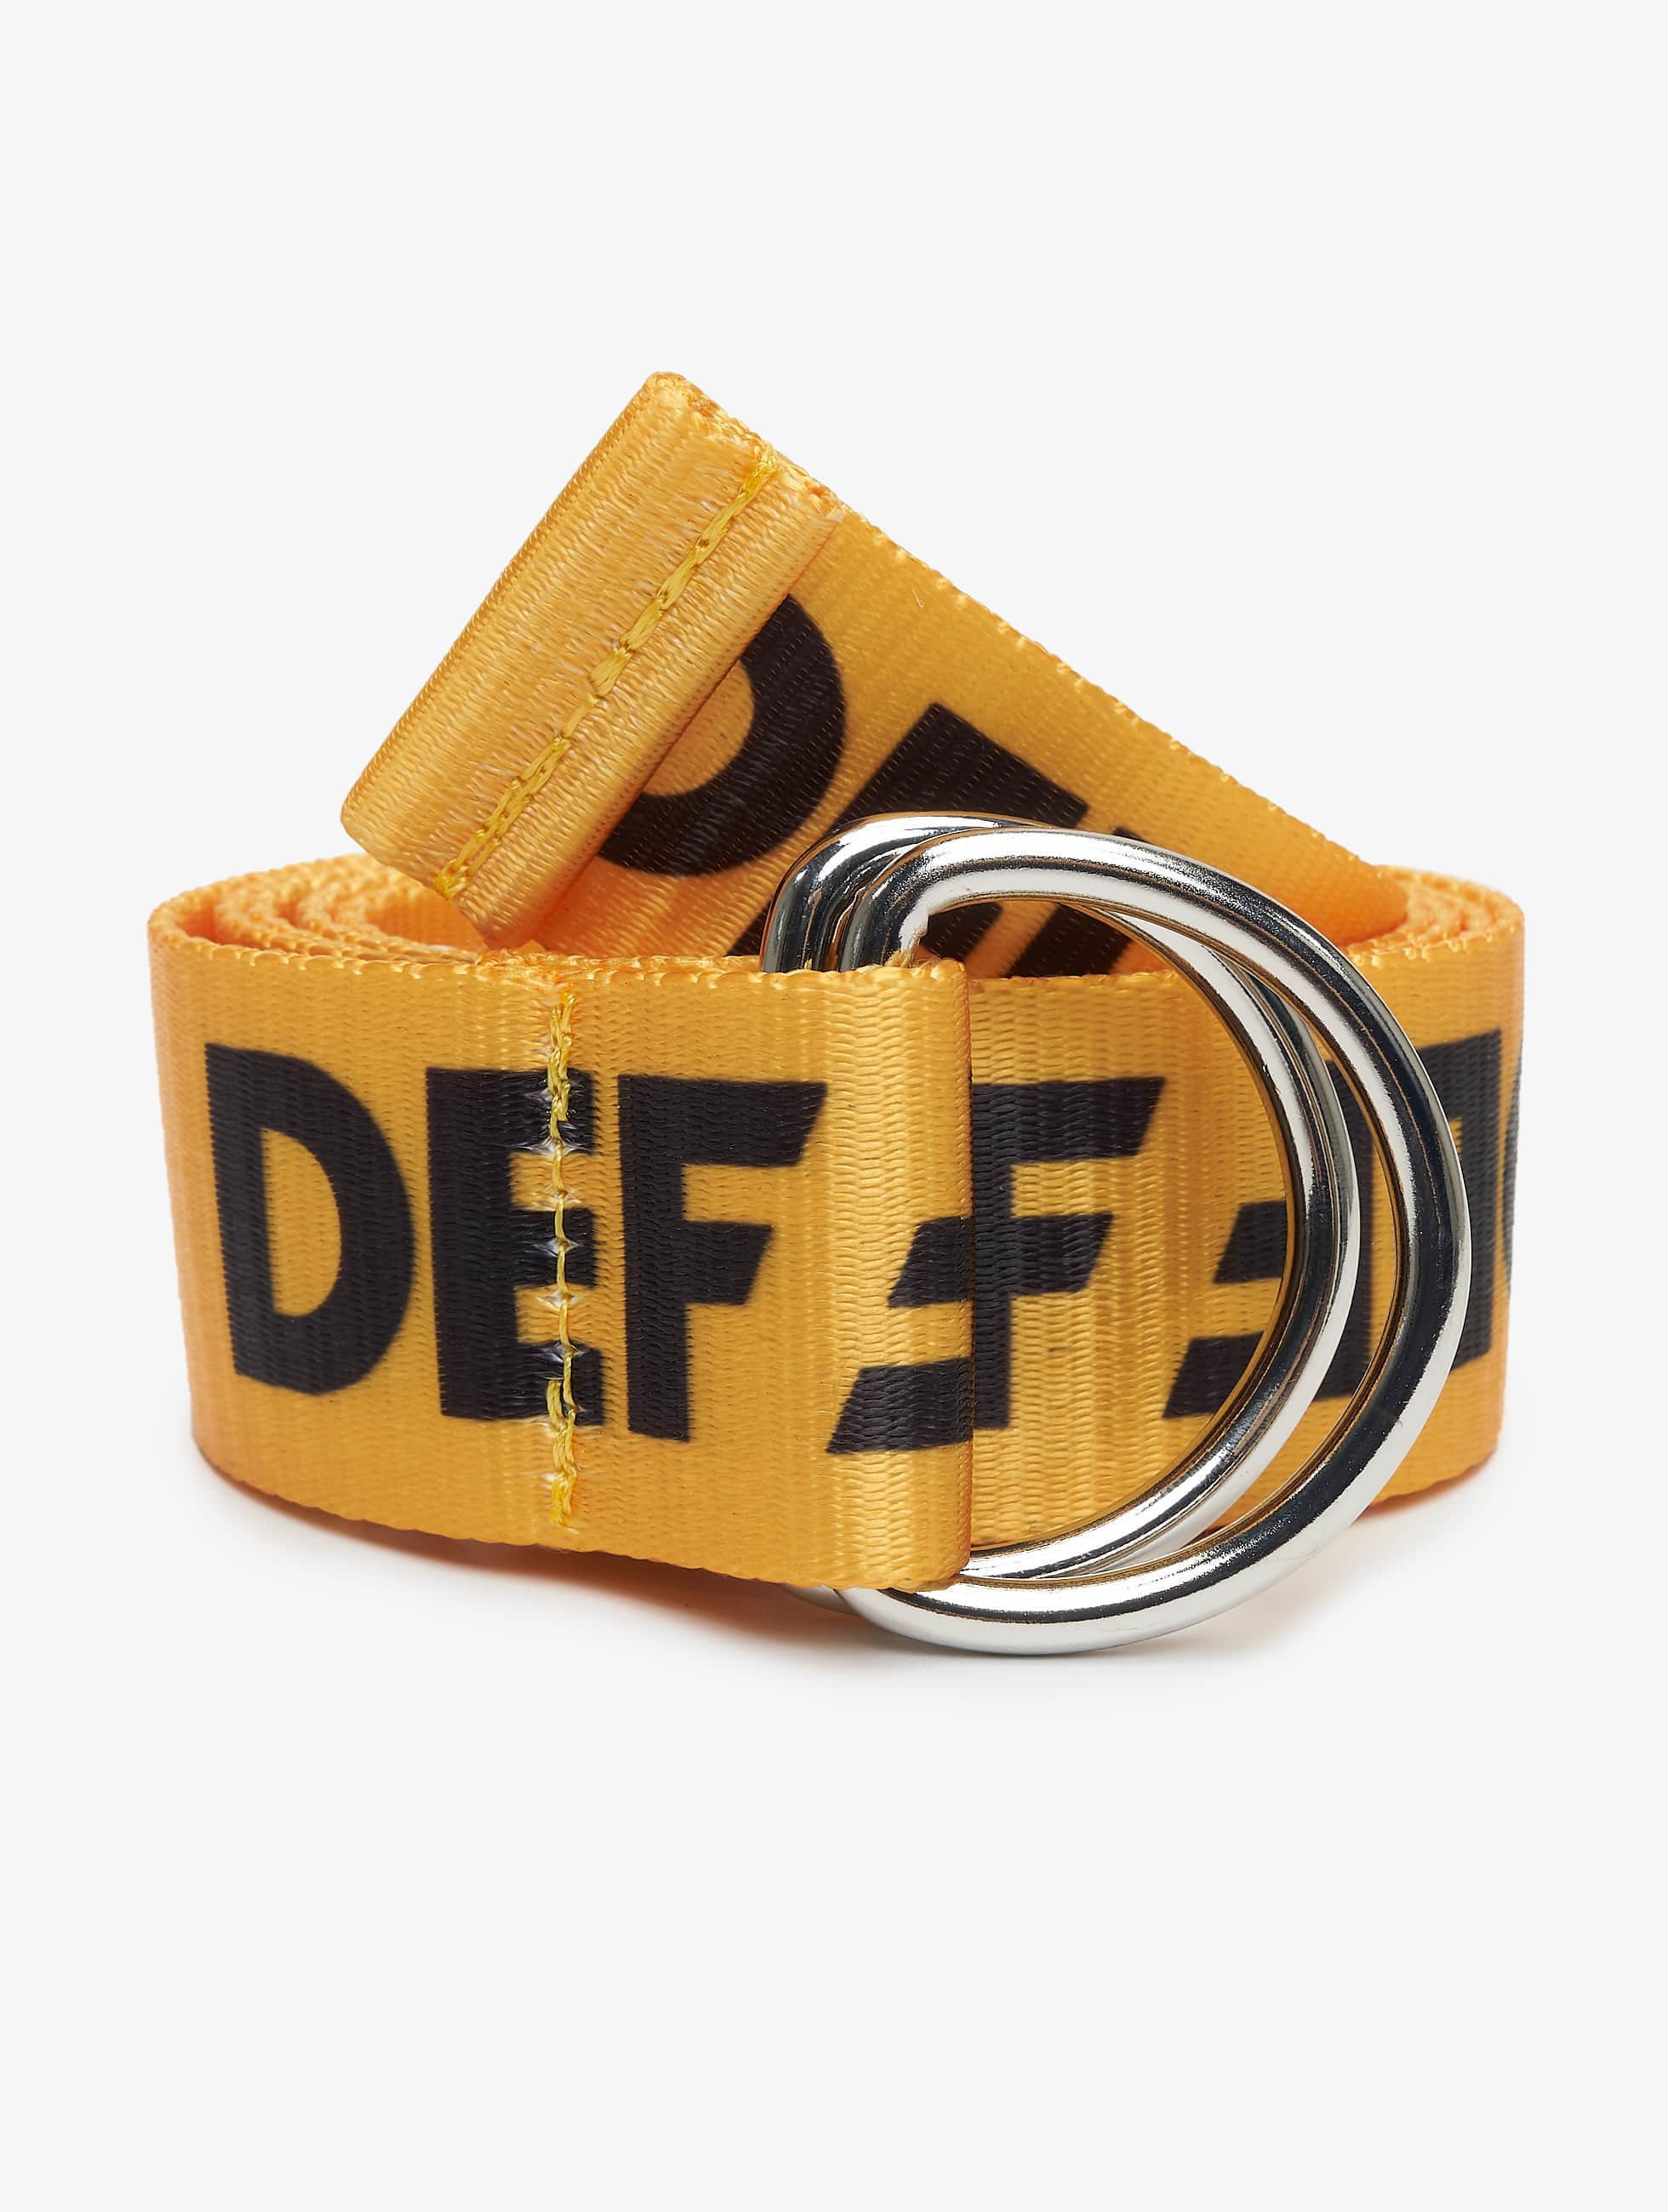 DEF / Belt Canvas in yellow Adjustable